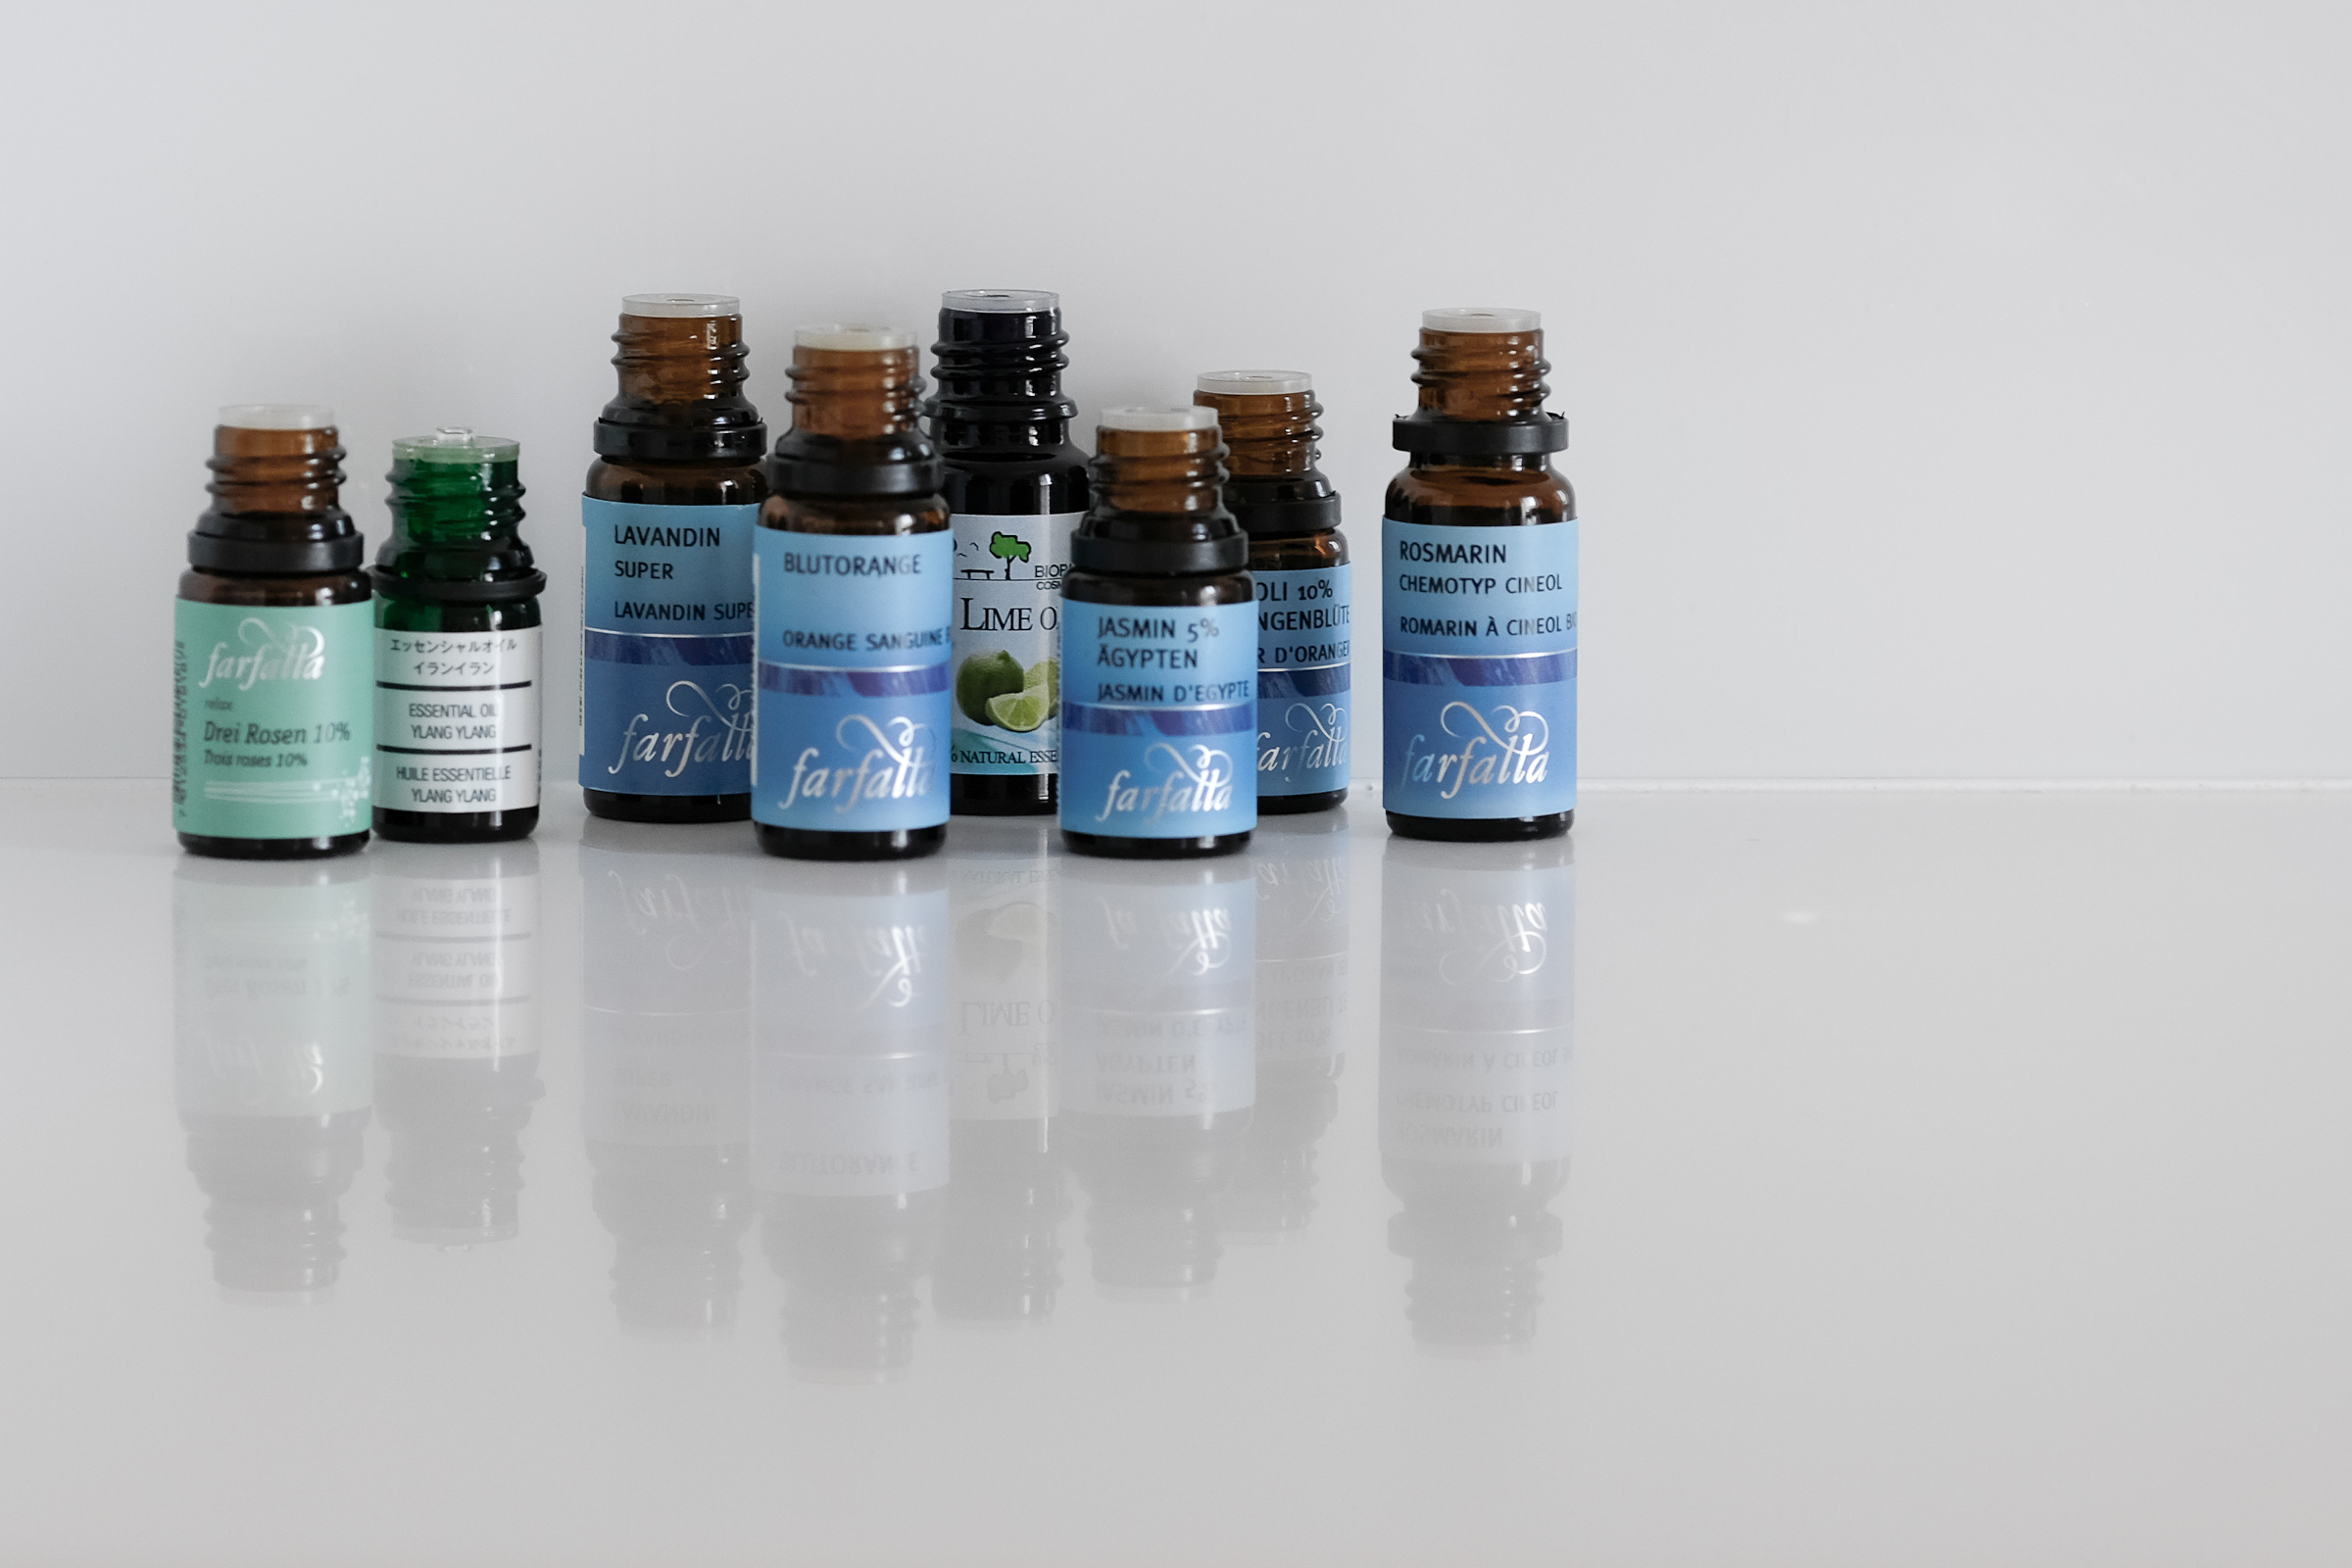 Essential oils are like pigments that combine to form new colors, which in turn can be used to create works of art.